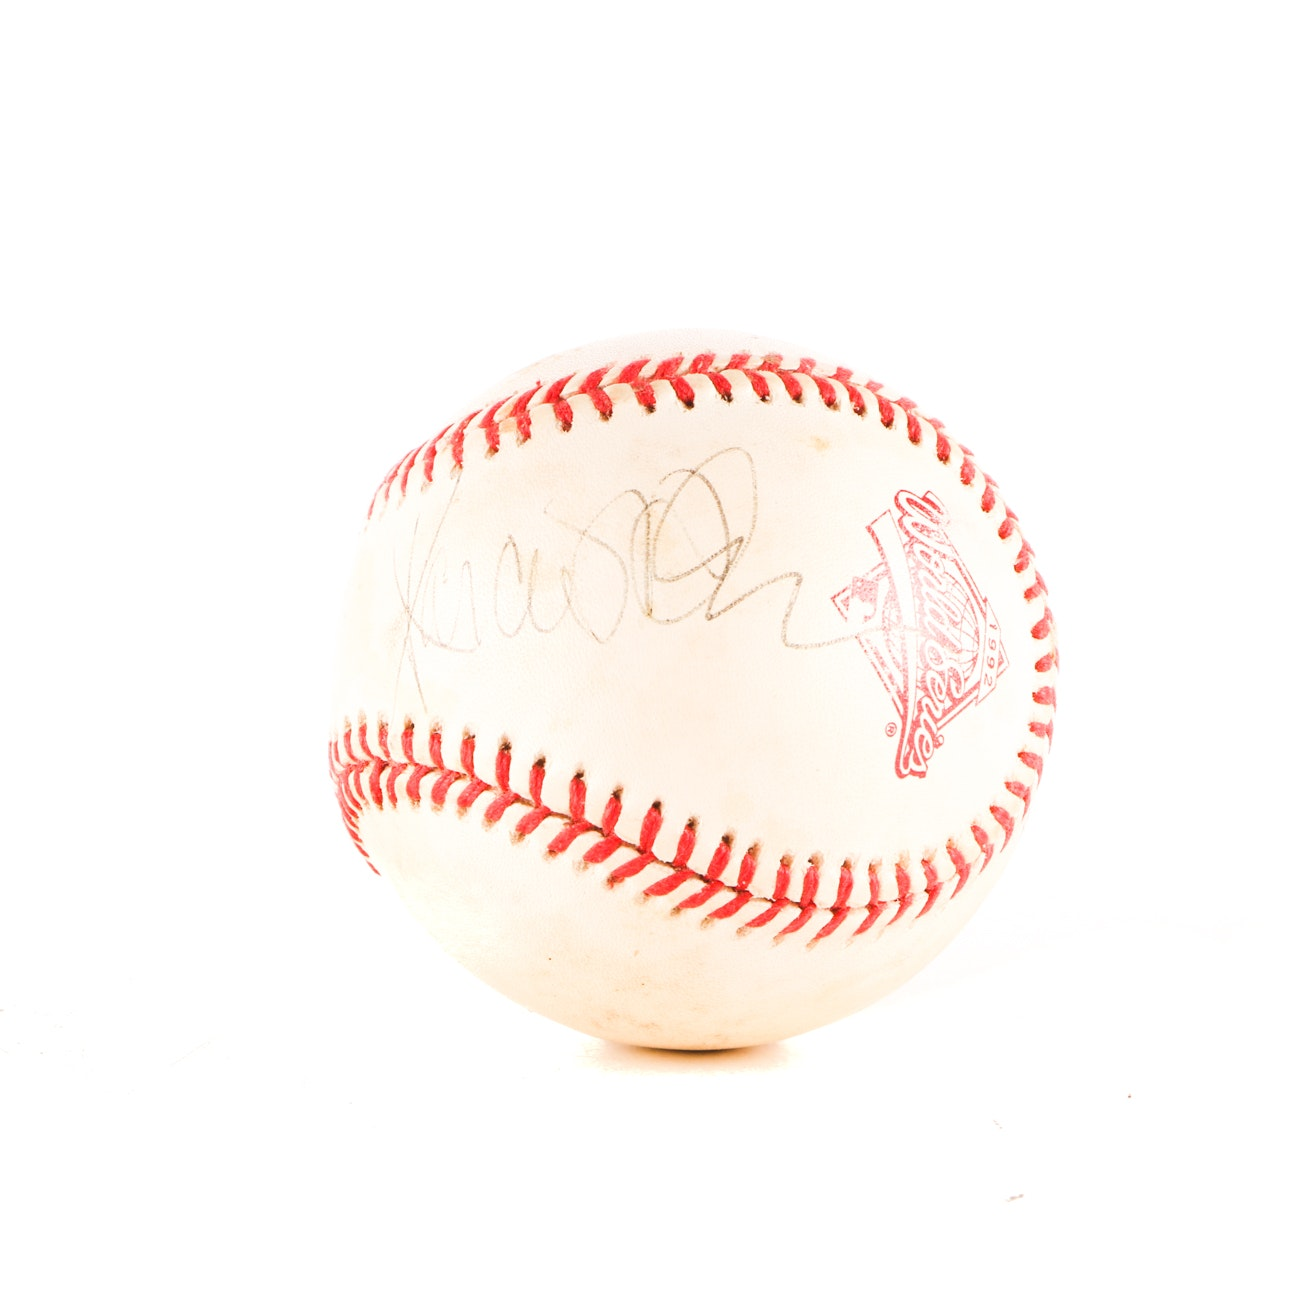 Marcus Allen Signed 1992 World Series Baseball